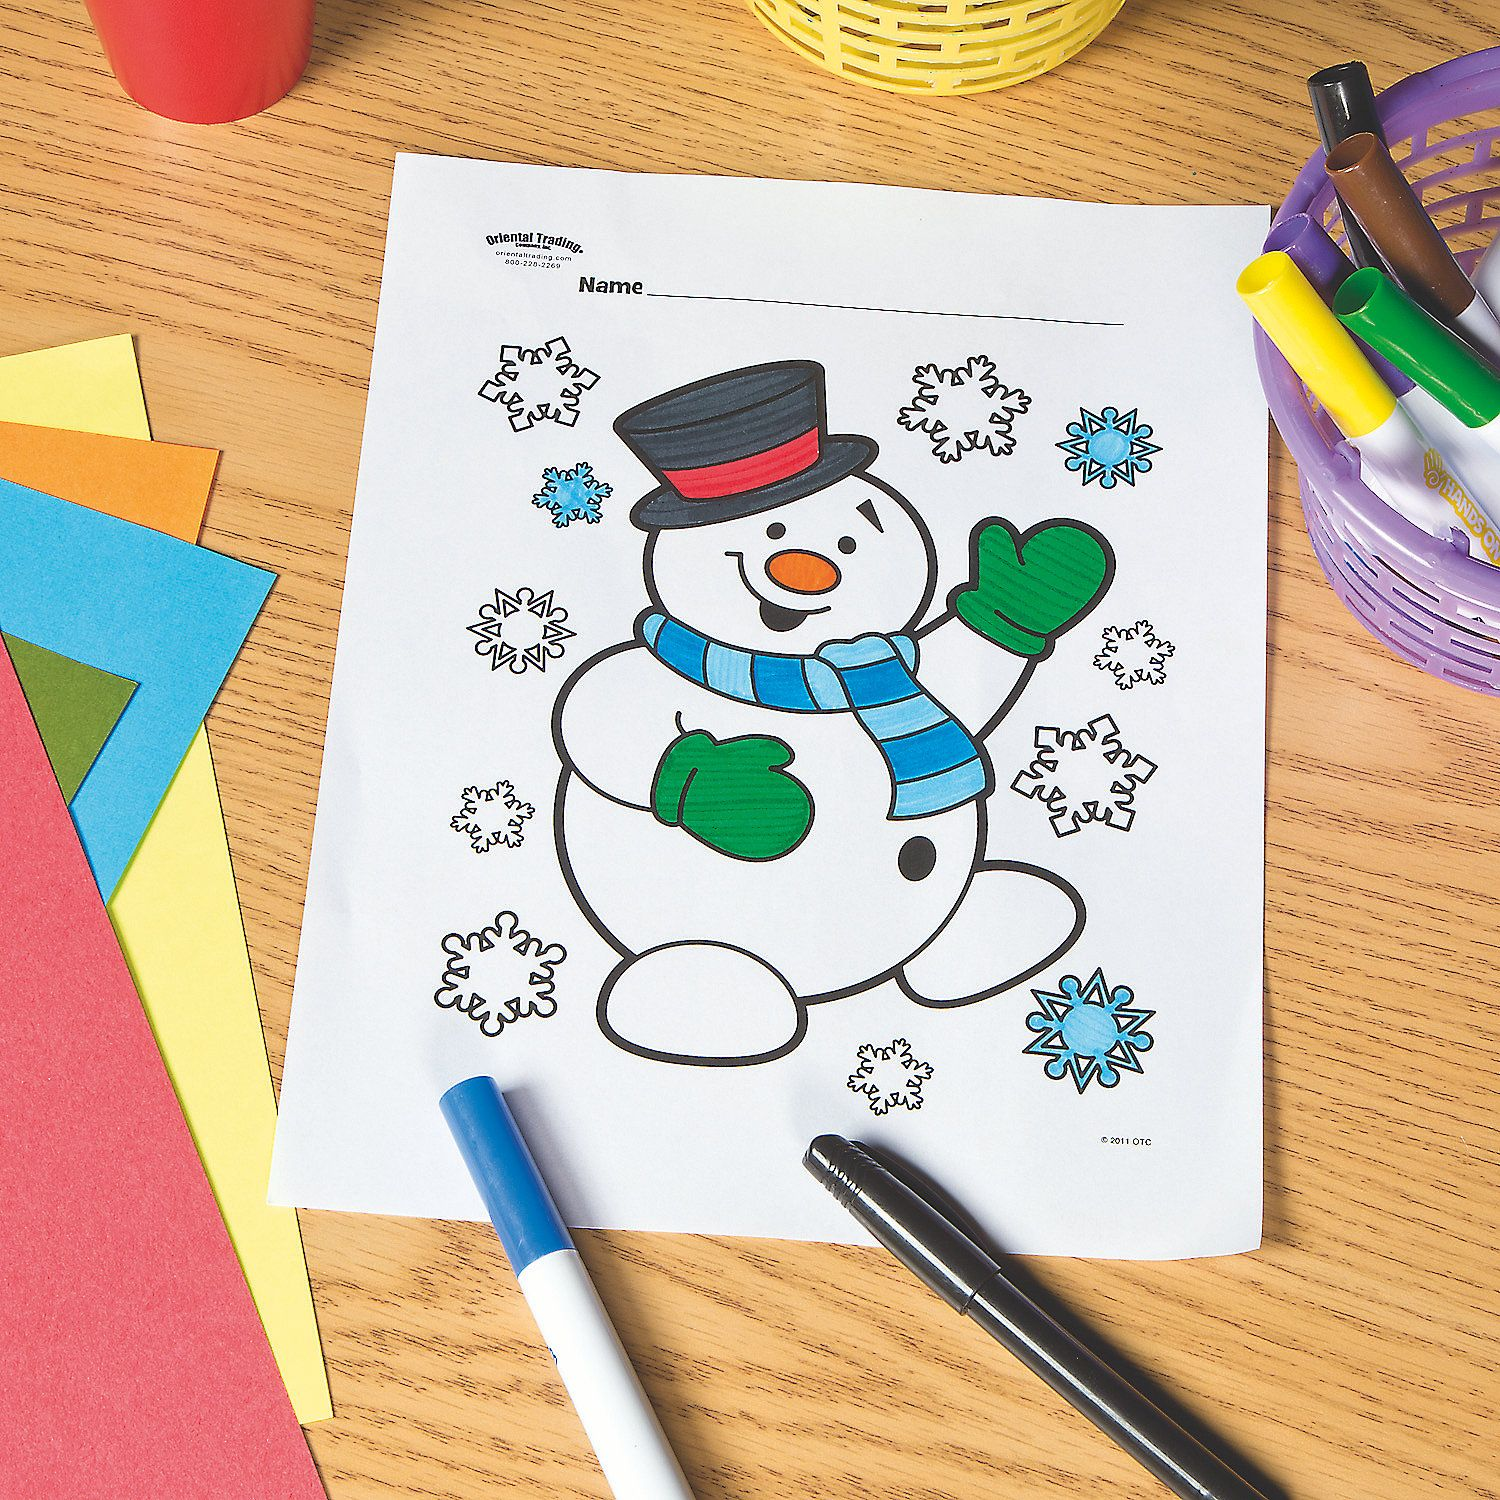 Snowman Free Printable Coloring Page Orientaltrading Com Snowman Party Printable Christmas Coloring Pages Thanksgiving Coloring Pages